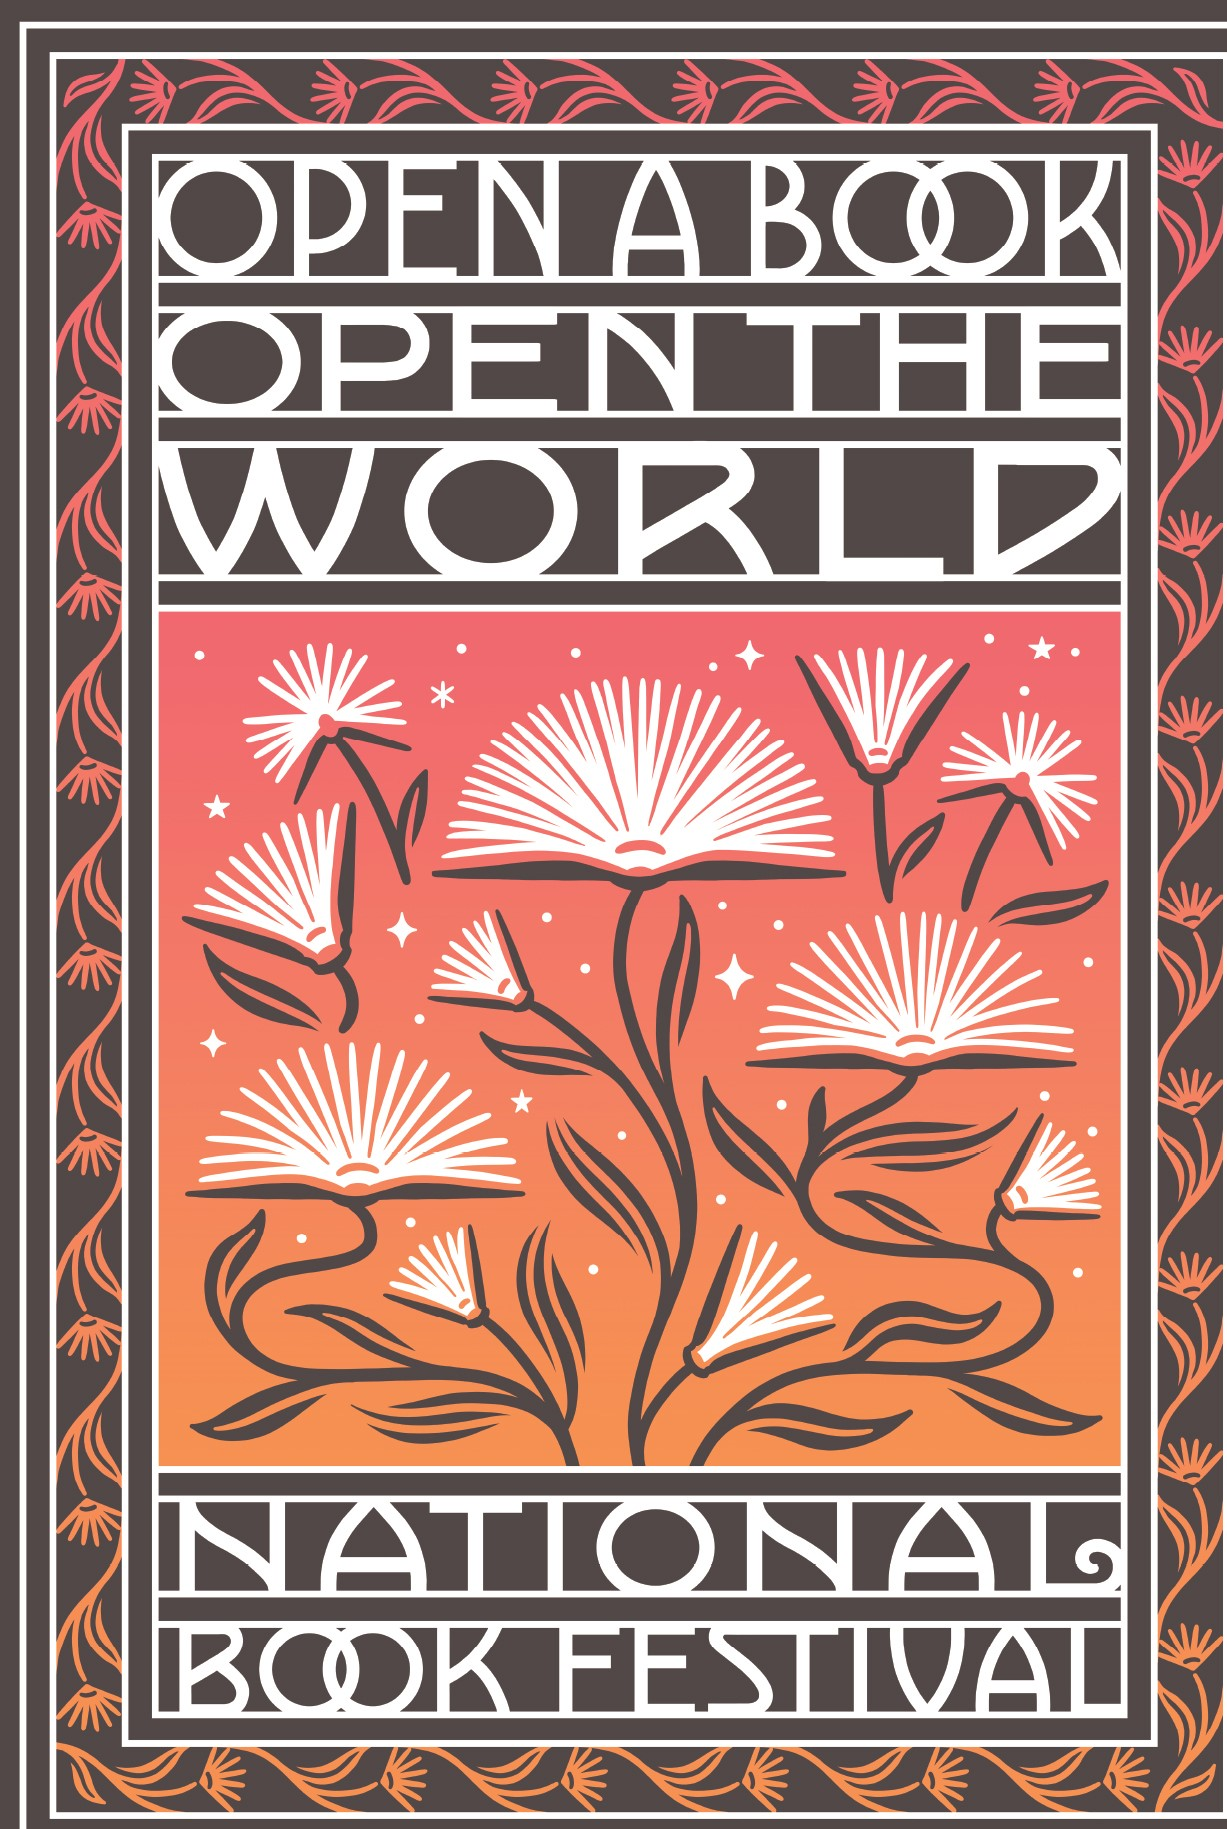 """""""Open a Book, Open the World"""" poster, depicting books as flowers, their pages opening like leaves"""